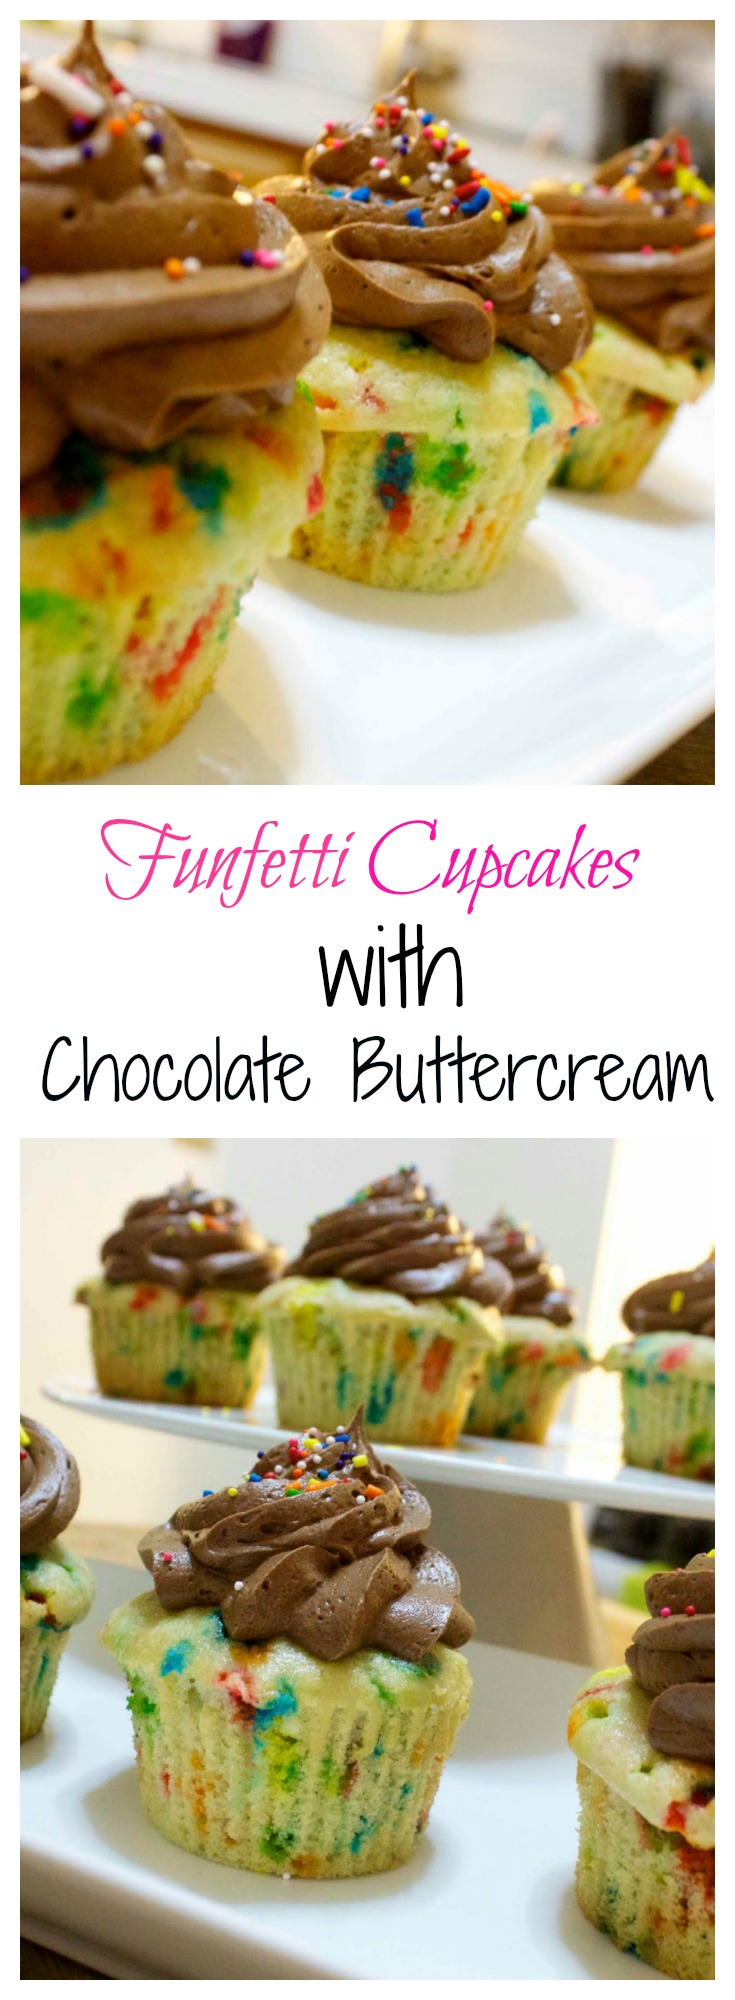 Funfetti Cupcakes with Homemade Chocolate Buttercream from Scratch